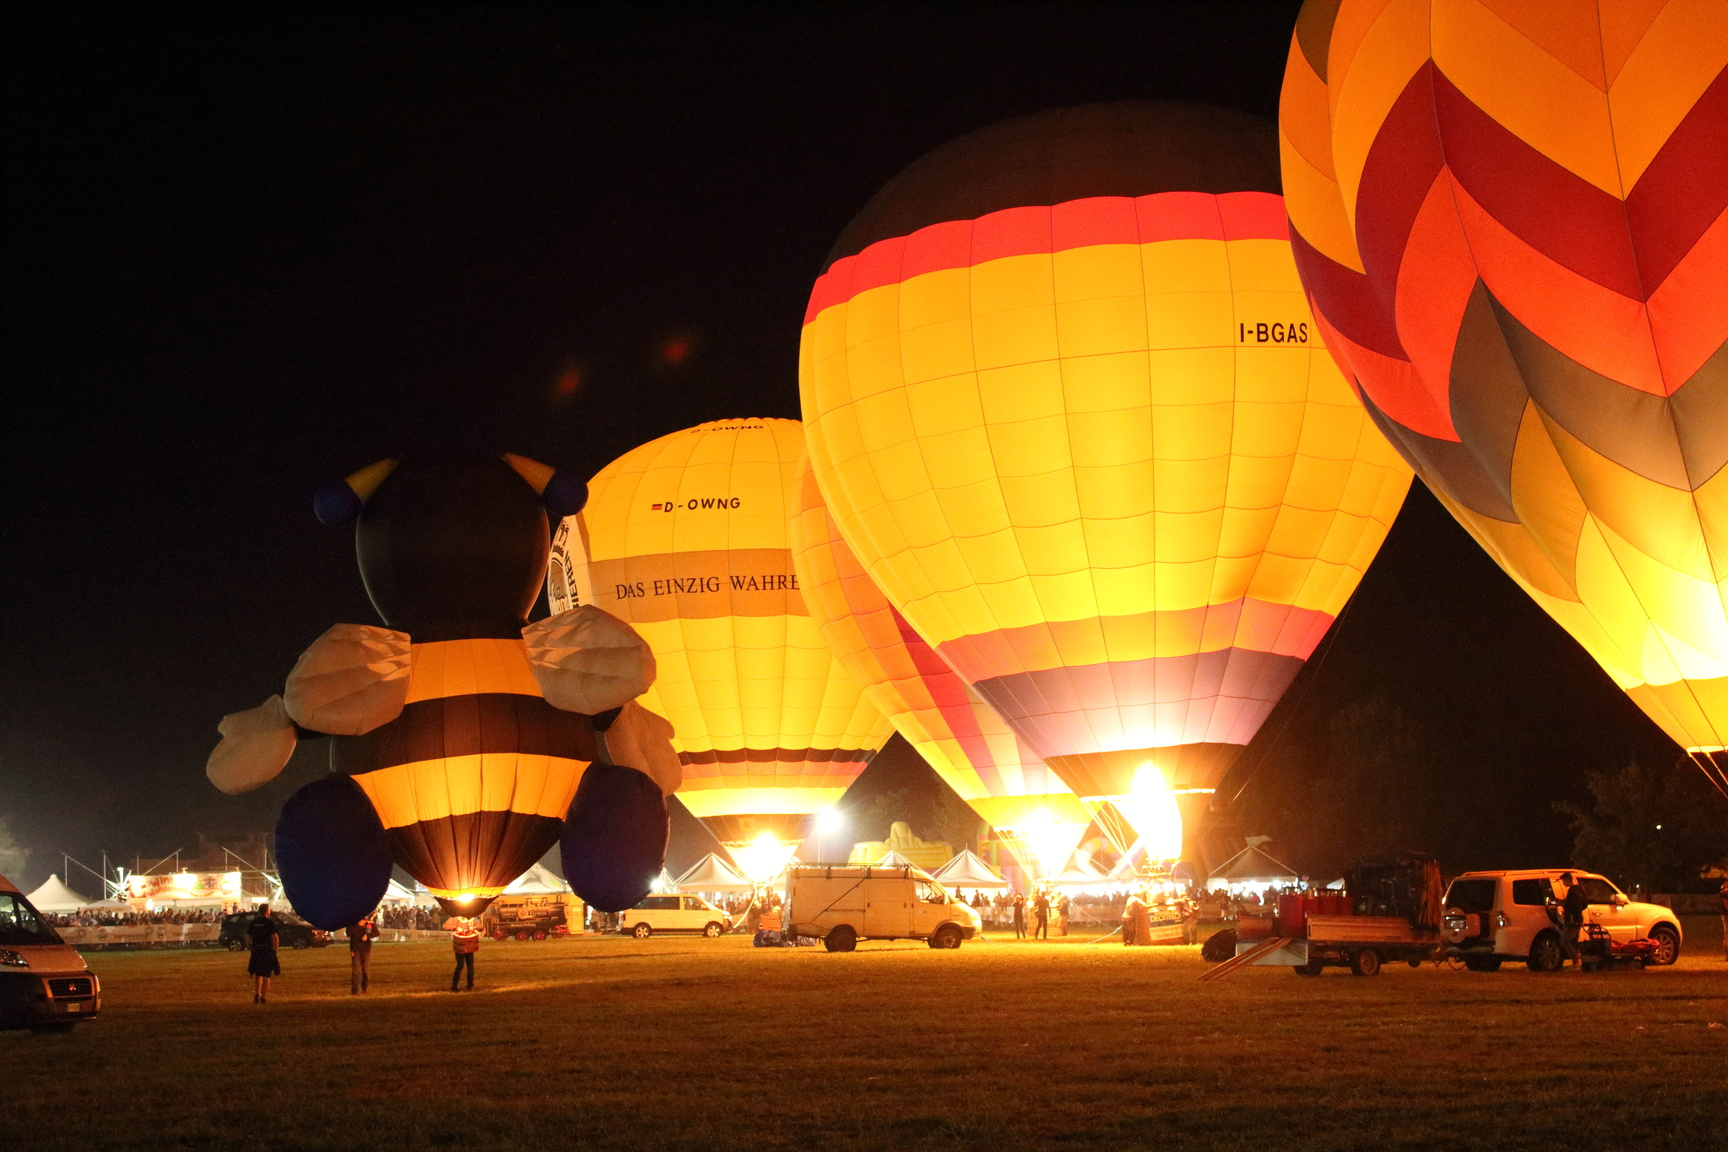 Four hot air balloons lit up at night